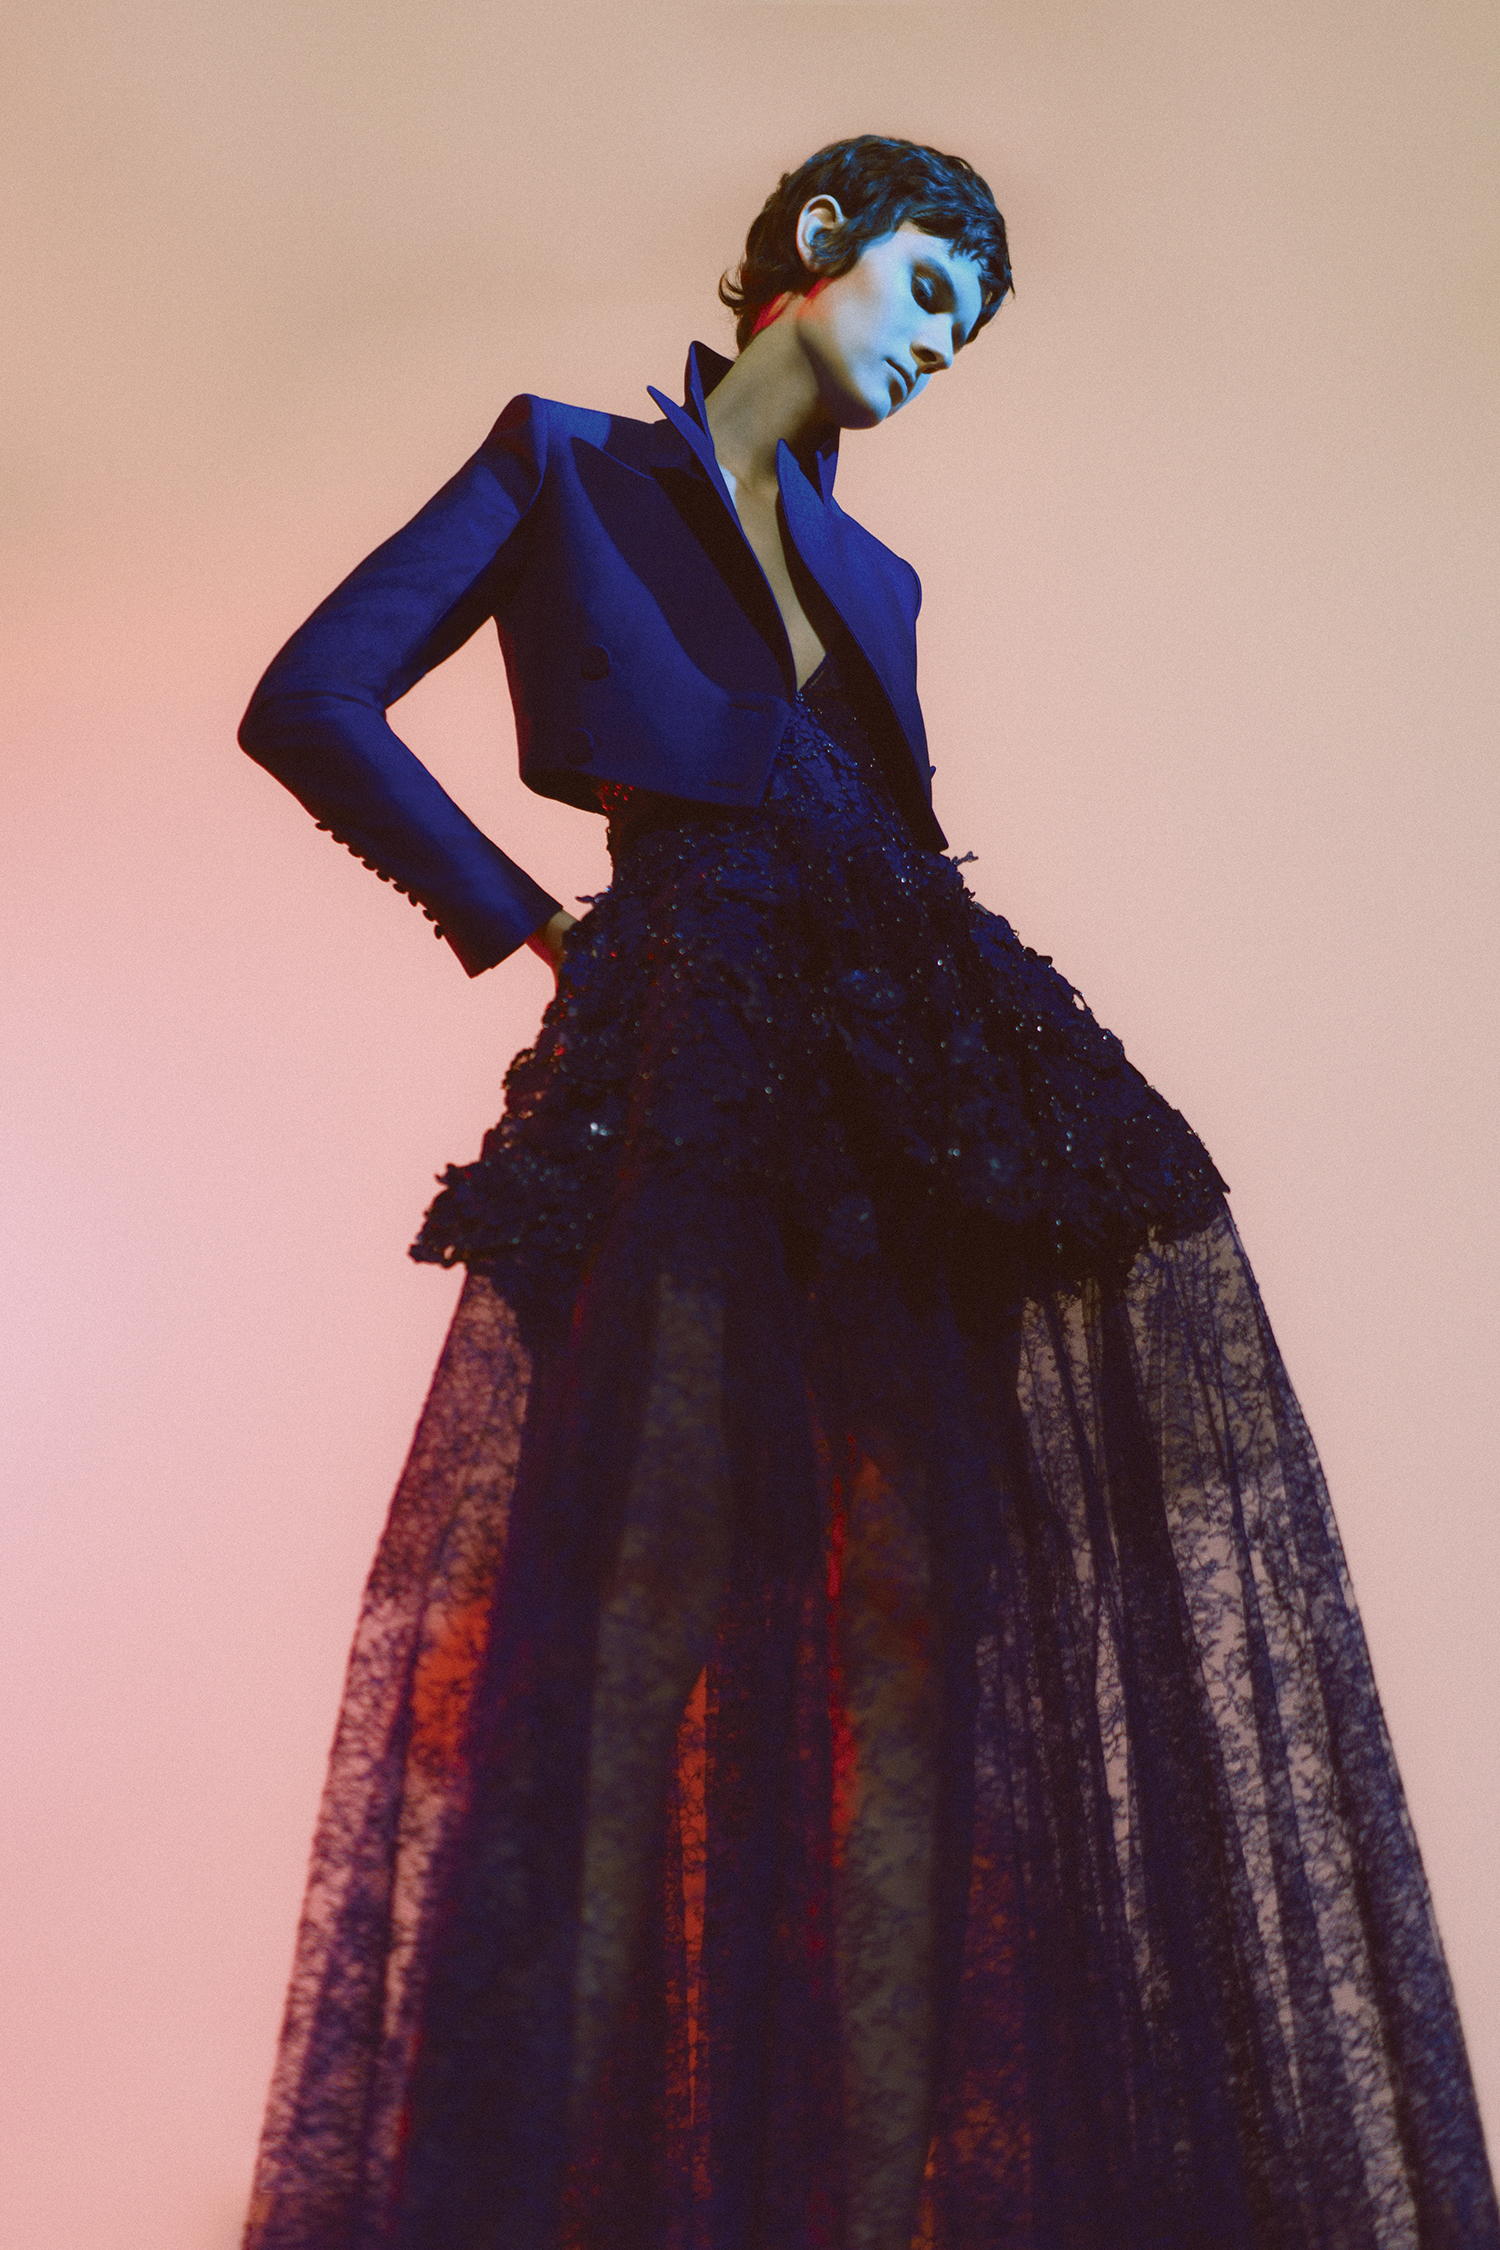 20 - Givenchy Haute Couture - Neil Krug.jpg